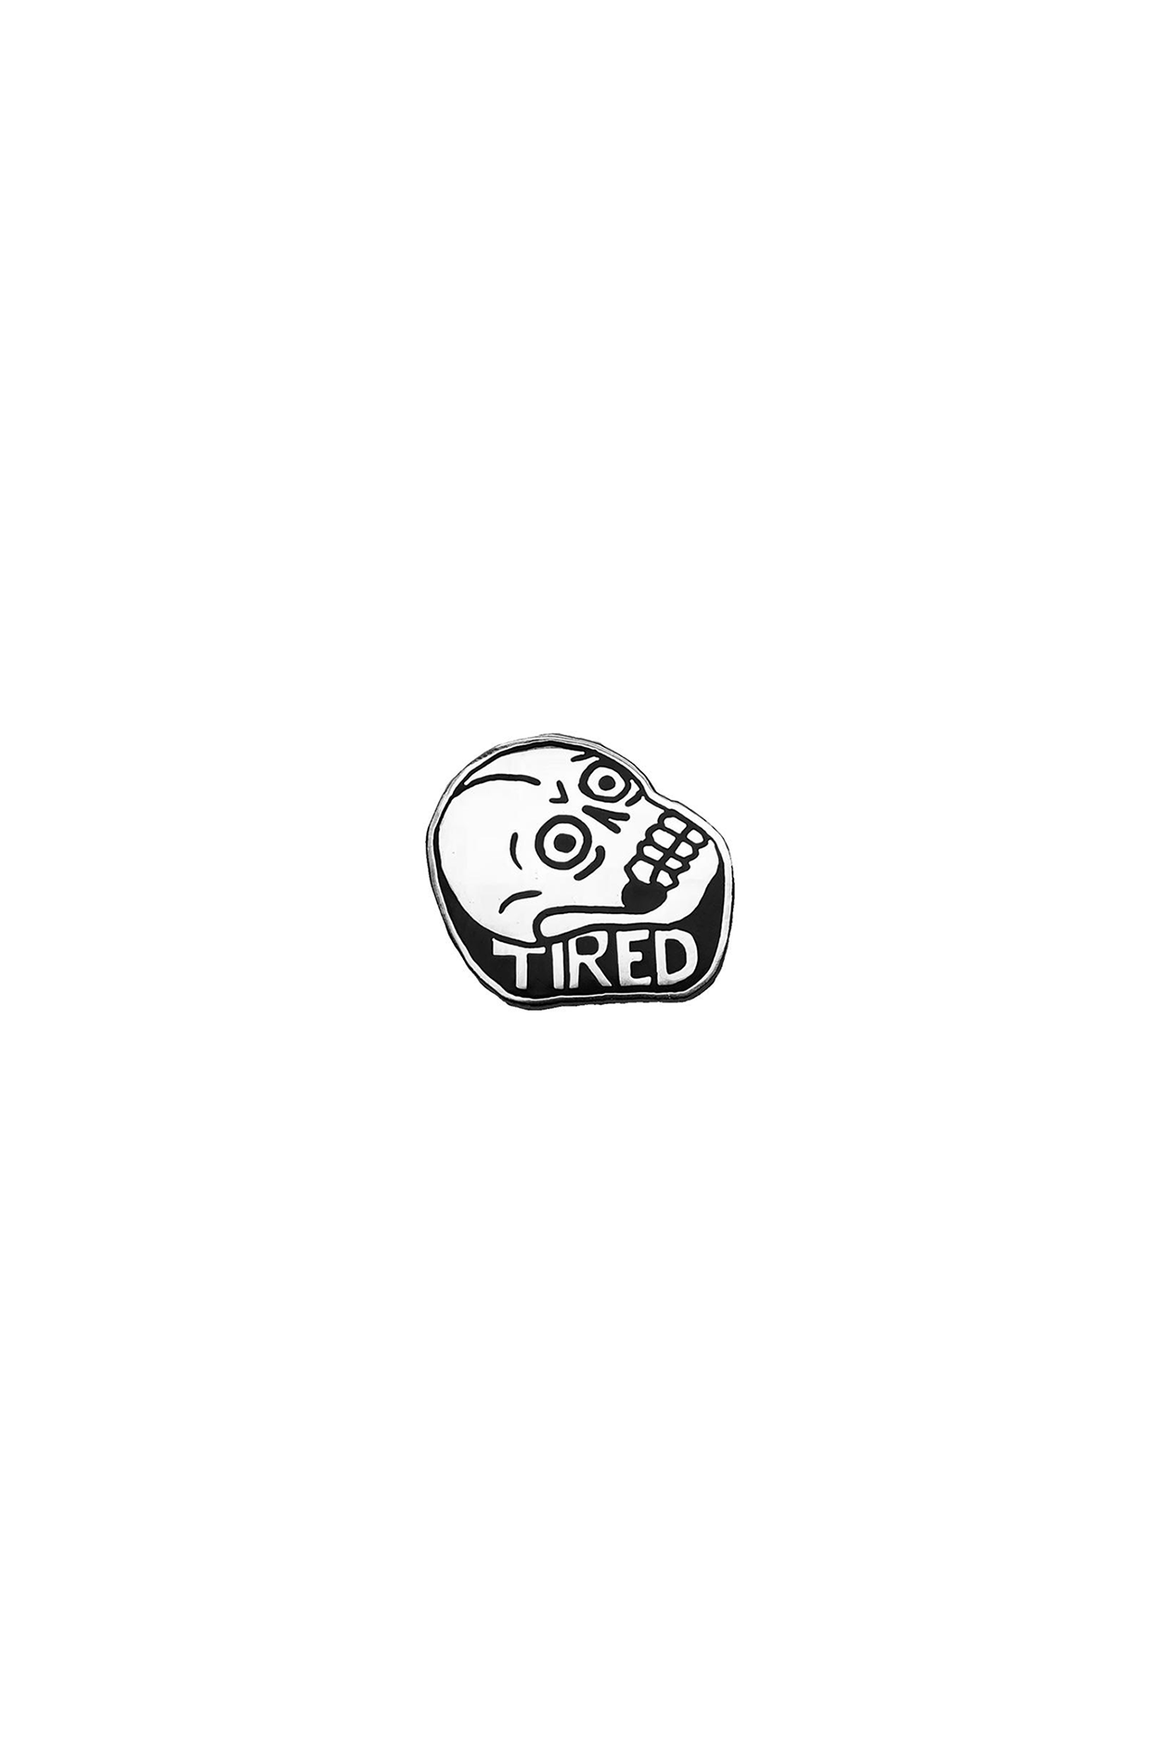 Dead Tired Lapel Pin - Philistine